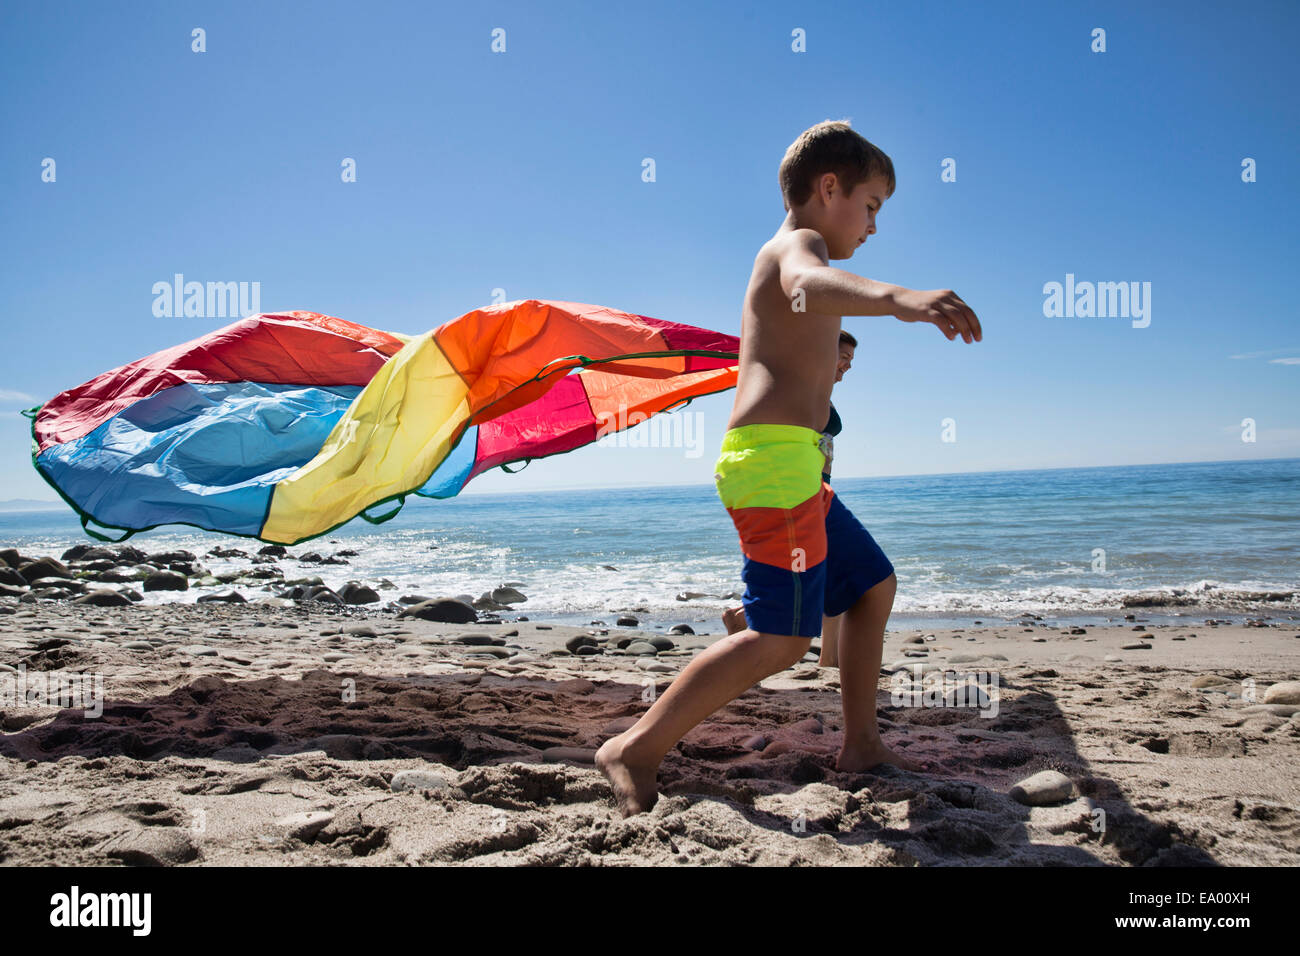 Mother and son running with multi colored textile on beach, County Park, Los Angeles, California, USA - Stock Image